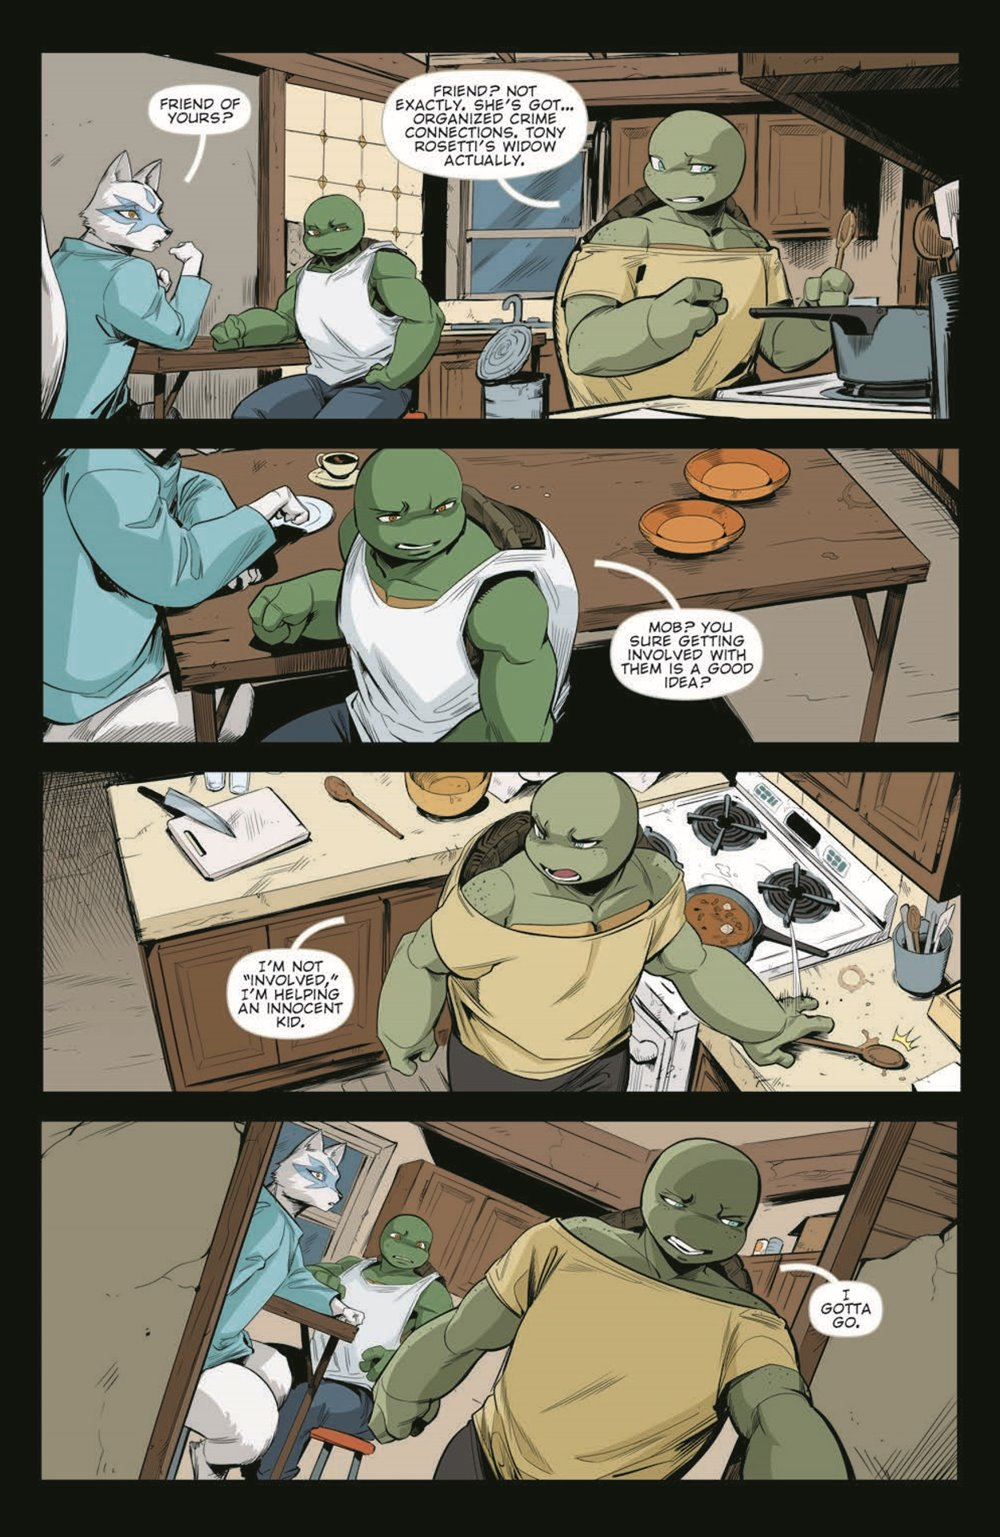 TMNT-JennikaII_05_pr-4 ComicList Previews: TEENAGE MUTANT NINJA TURTLES JENNIKA II #5 (OF 6)